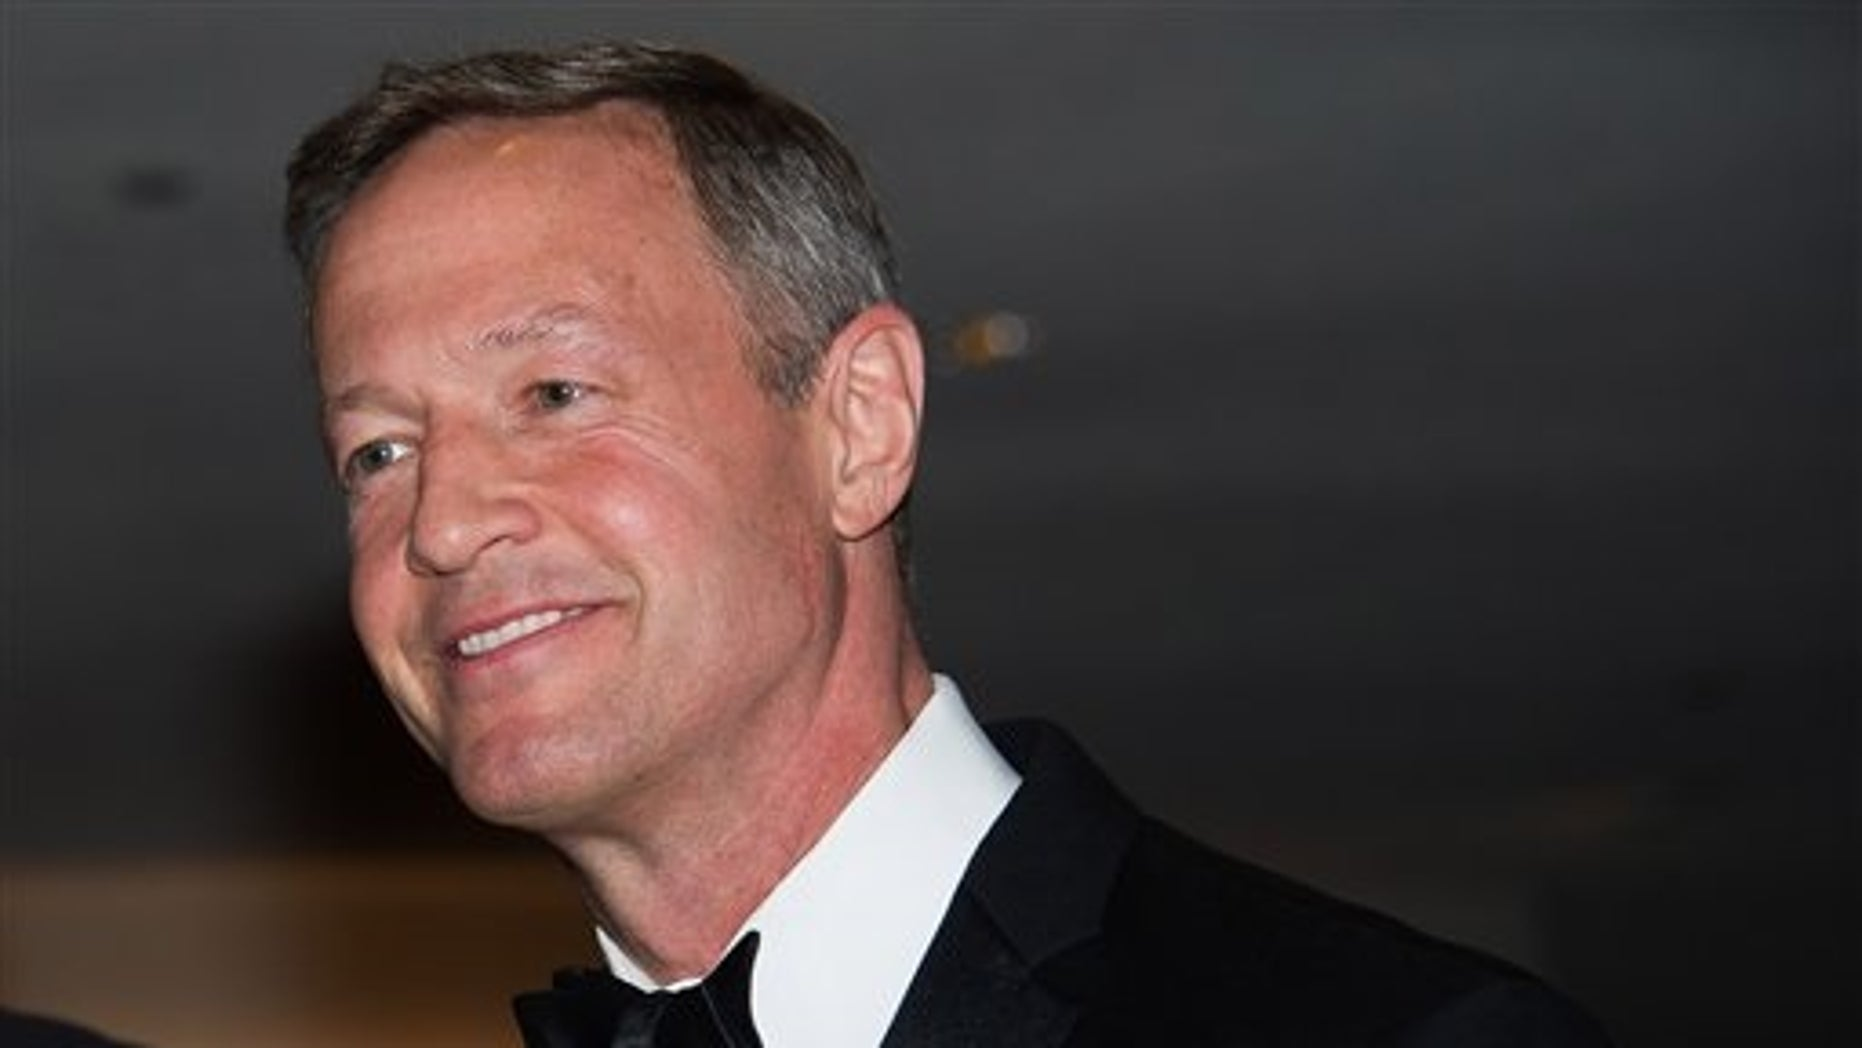 Martin O'Malley attends the 2015 White House Correspondents' Association Dinner at the Washington Hilton Hotel on Saturday, April 25, 2015, in Washington. (Photo by Charles Sykes/Invision/AP)